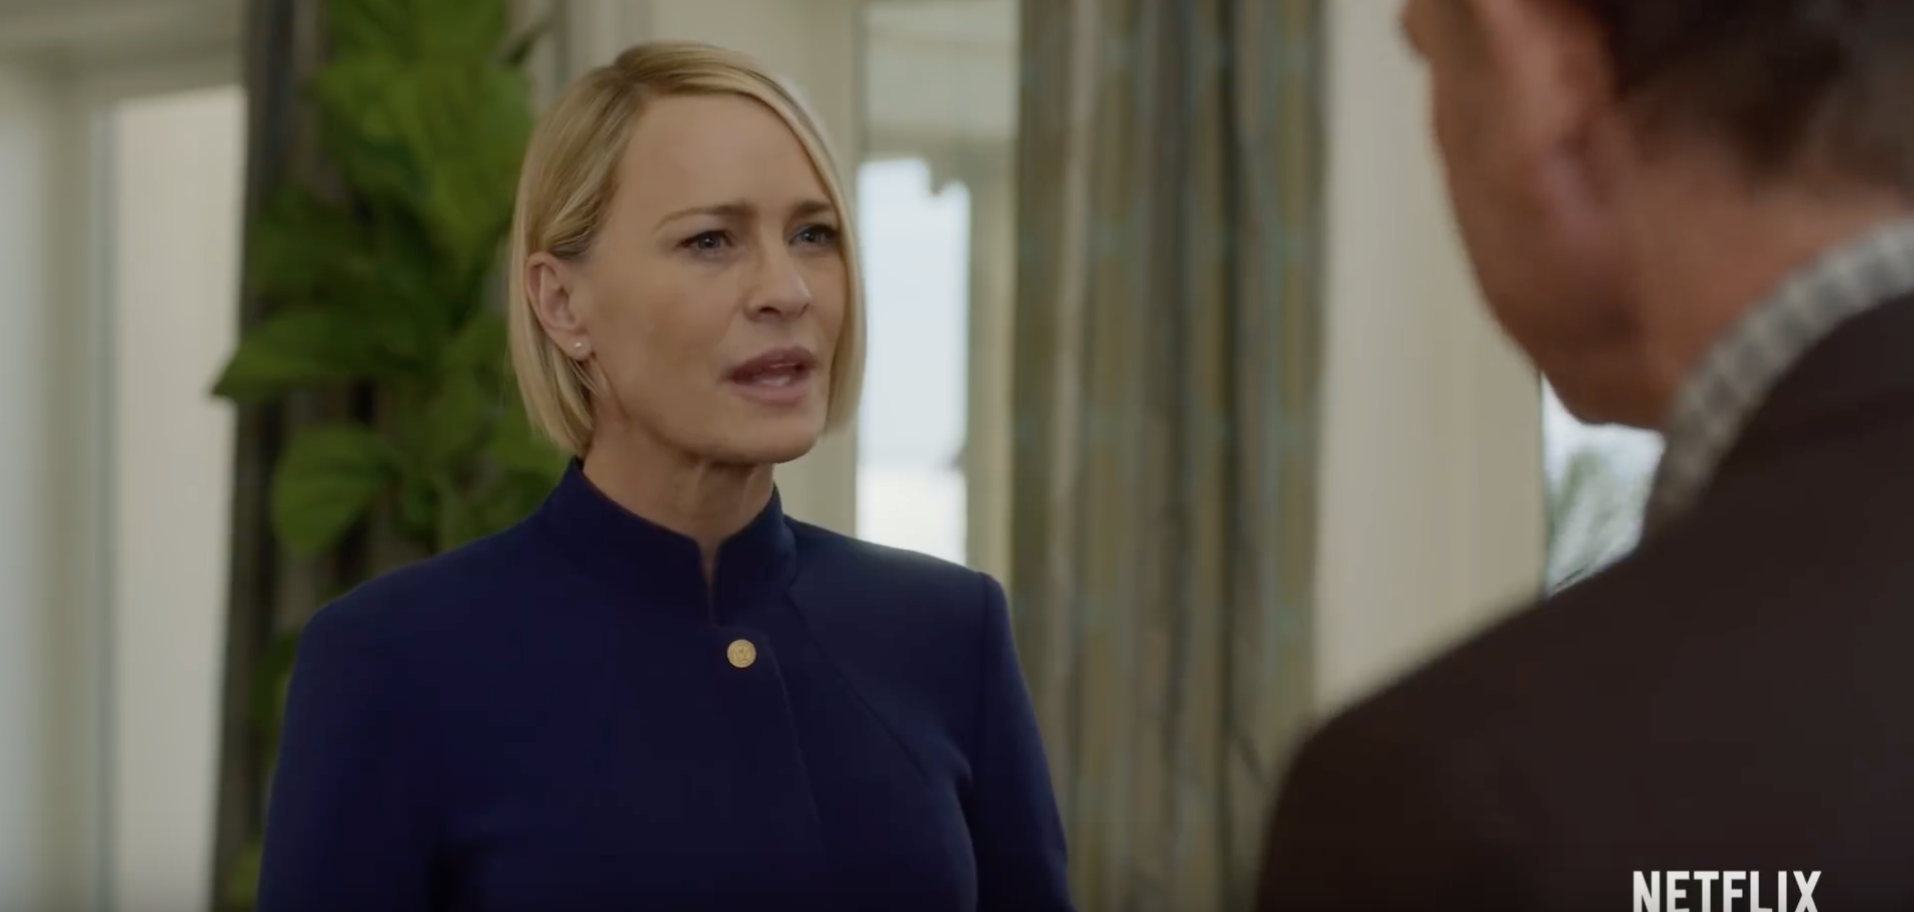 House Of Cards: Season 6|Official Trailer